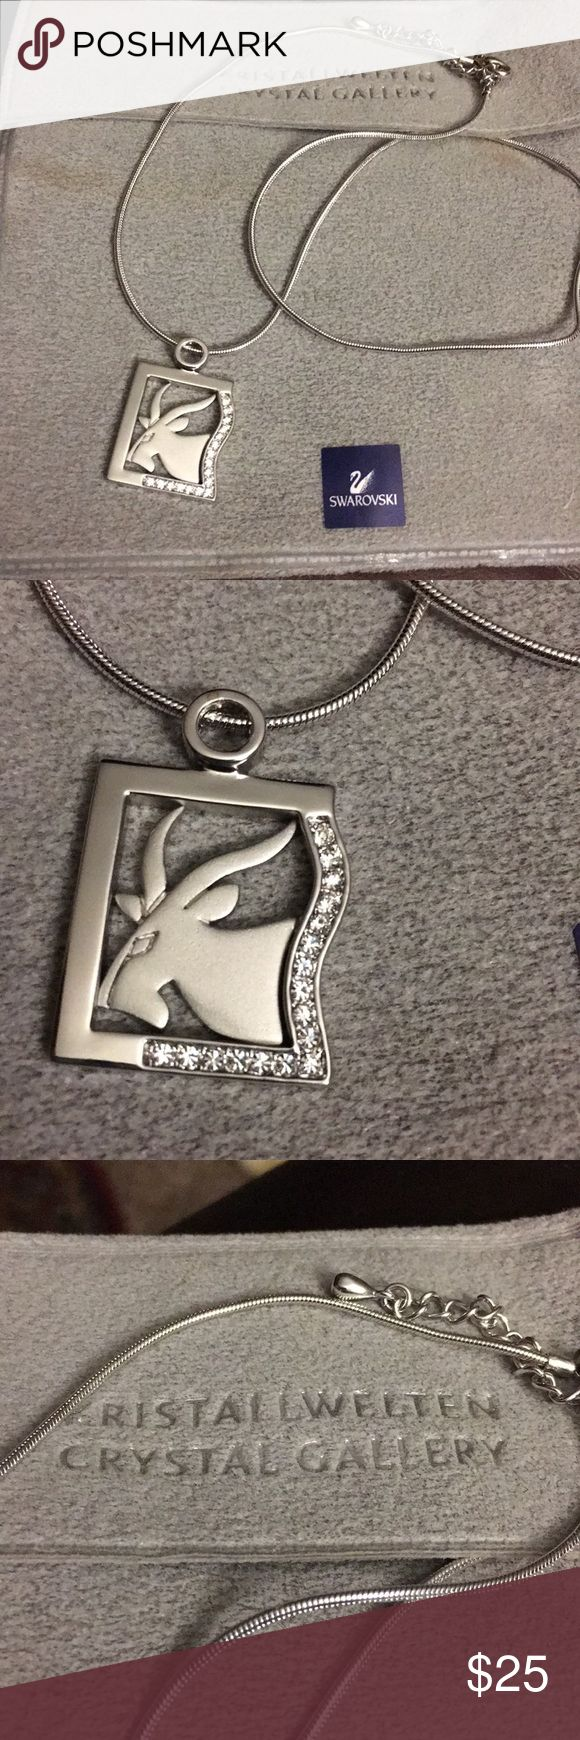 "Capricorn Swarovski crystal necklace Silver goat design with Swarovski crystals, necklace can be worn at 15"" to 18"" with extender links. NWT, never worn, purchased in Germany Swarovski Jewelry Necklaces"